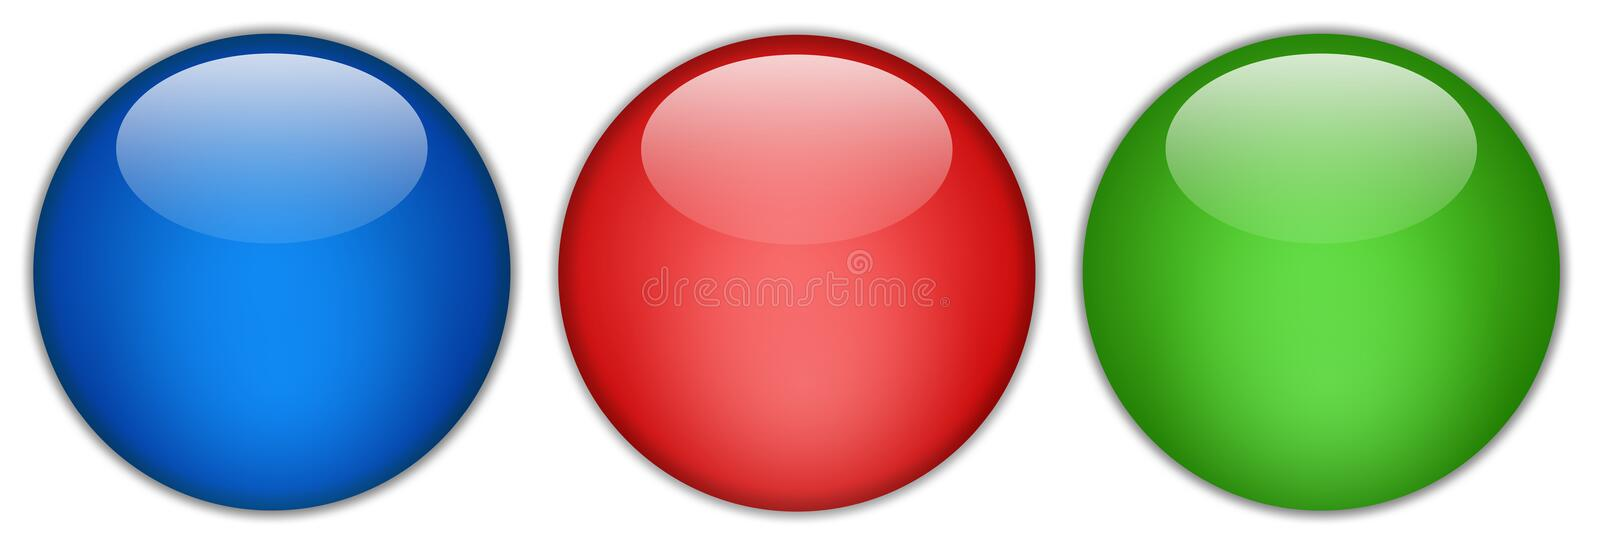 Blank glossy web button royalty free illustration